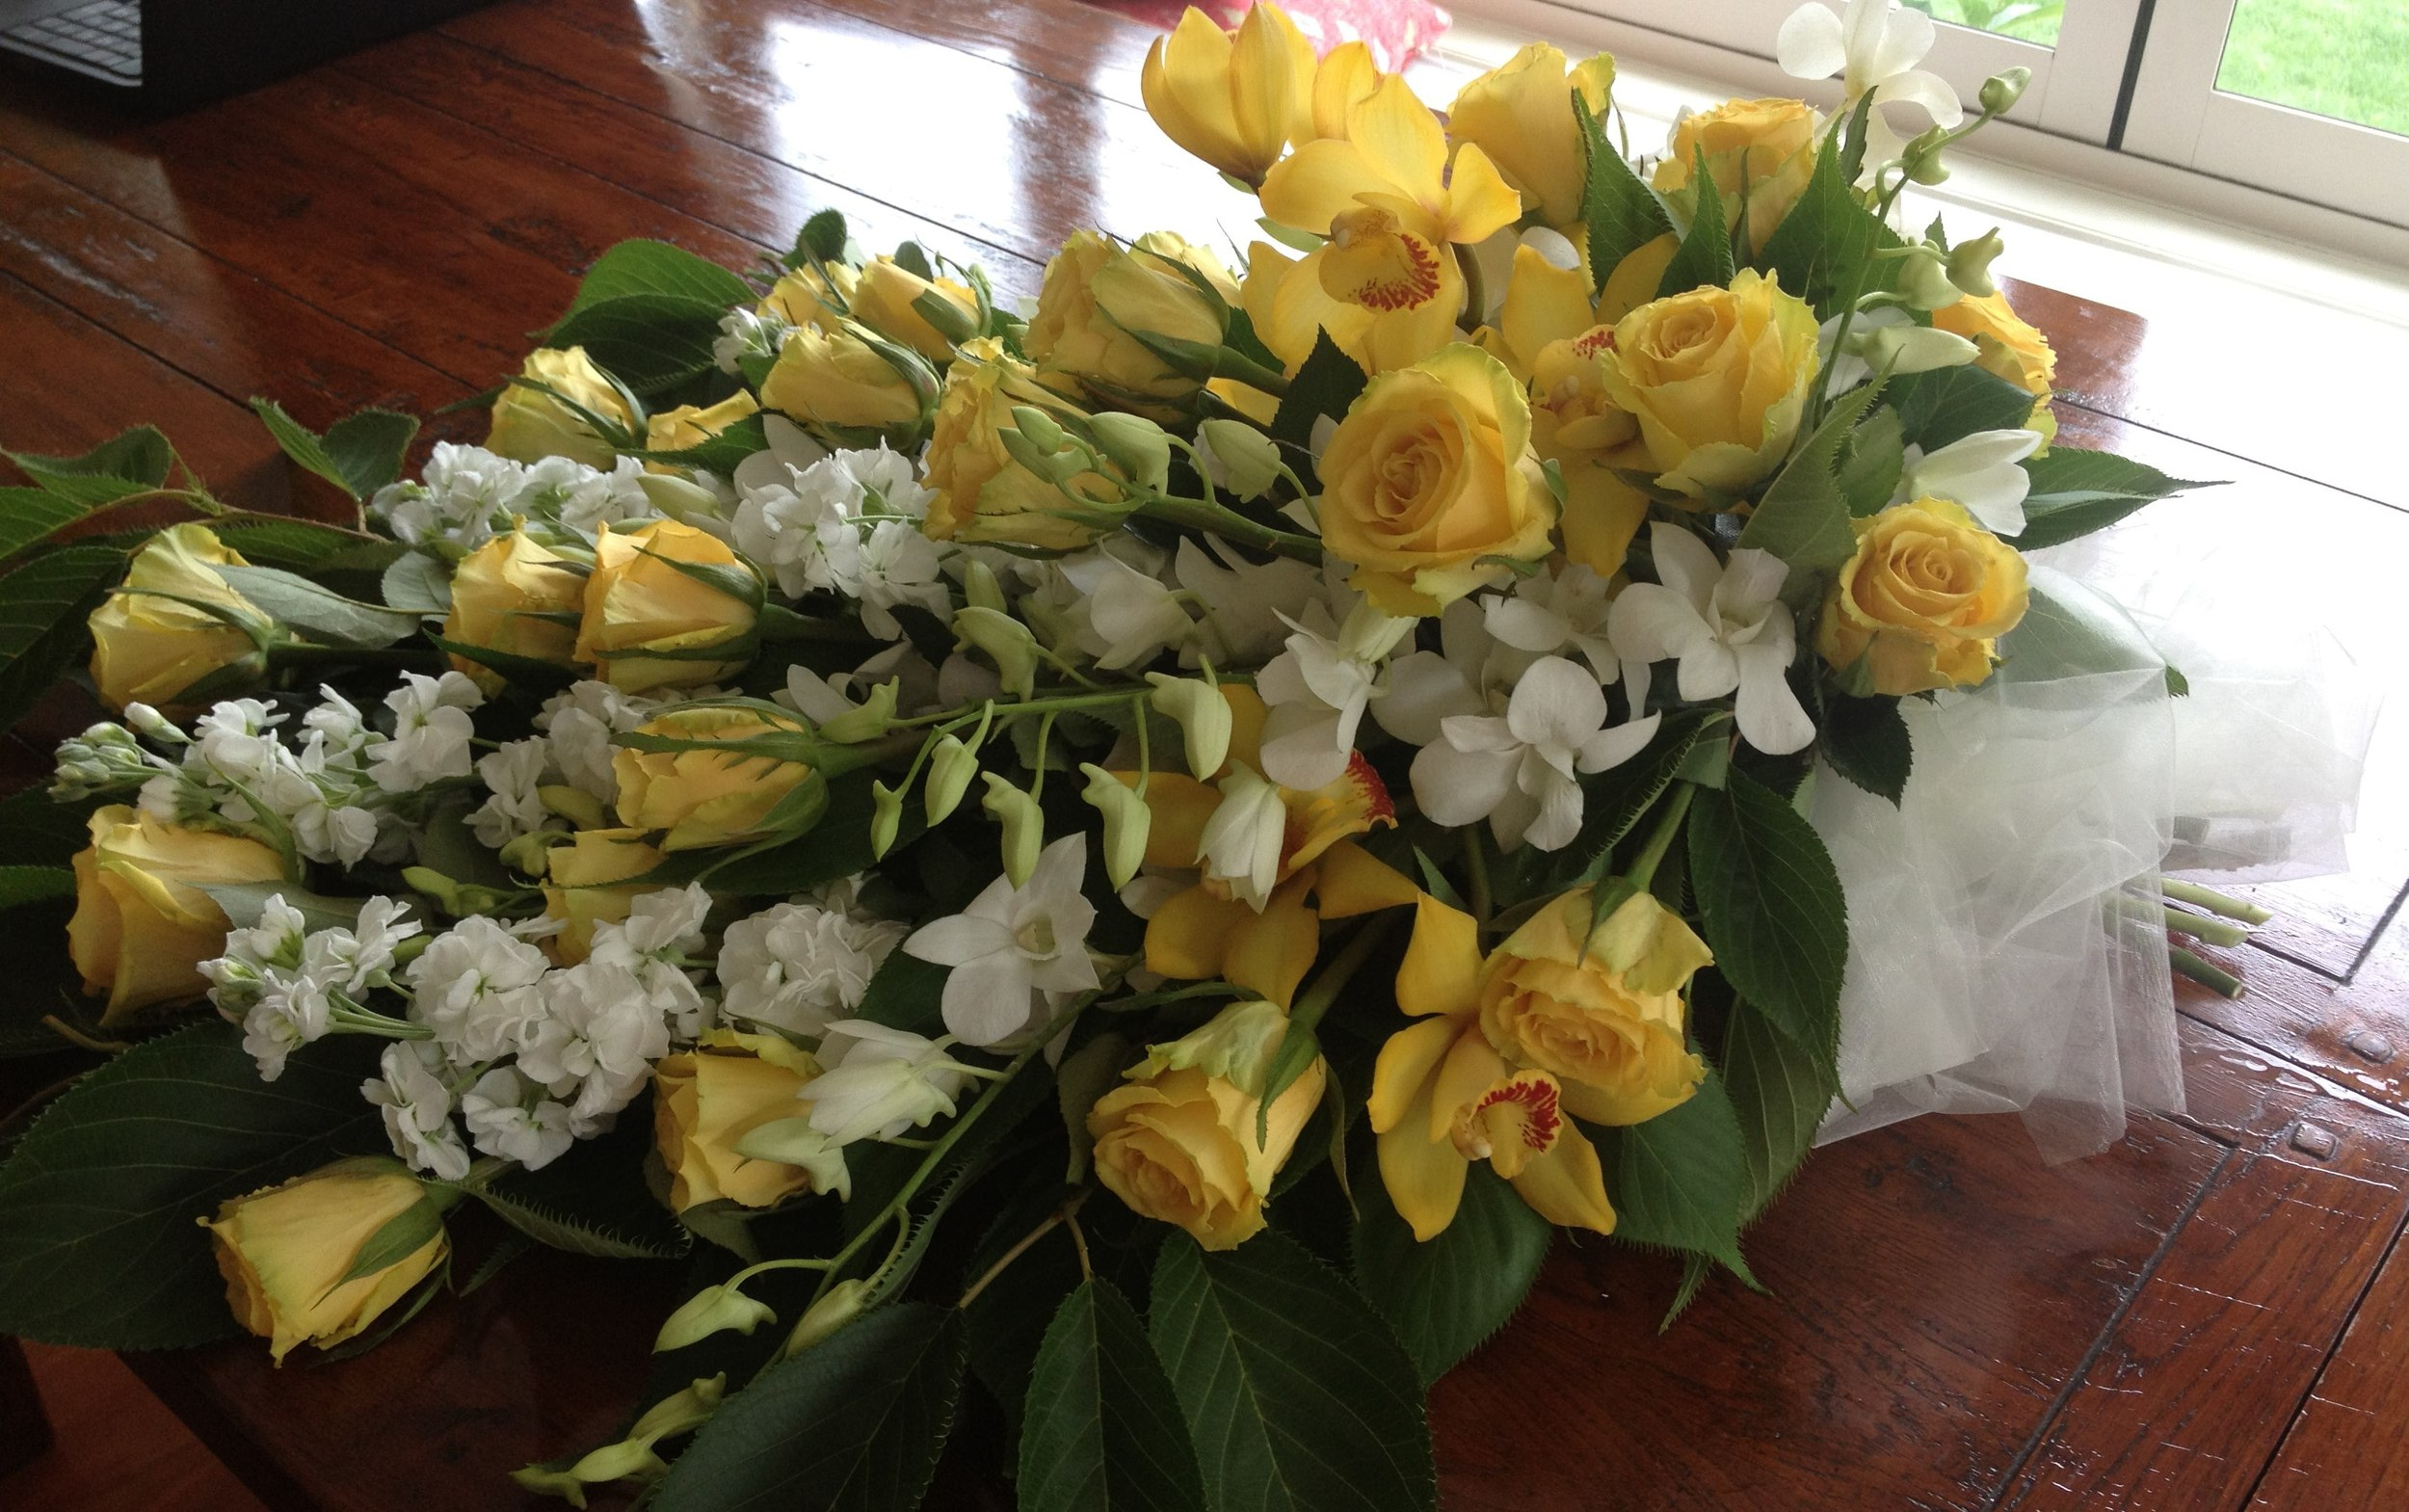 Yellow Roses, White Stock, Singapore and CymbidiumOrchids.